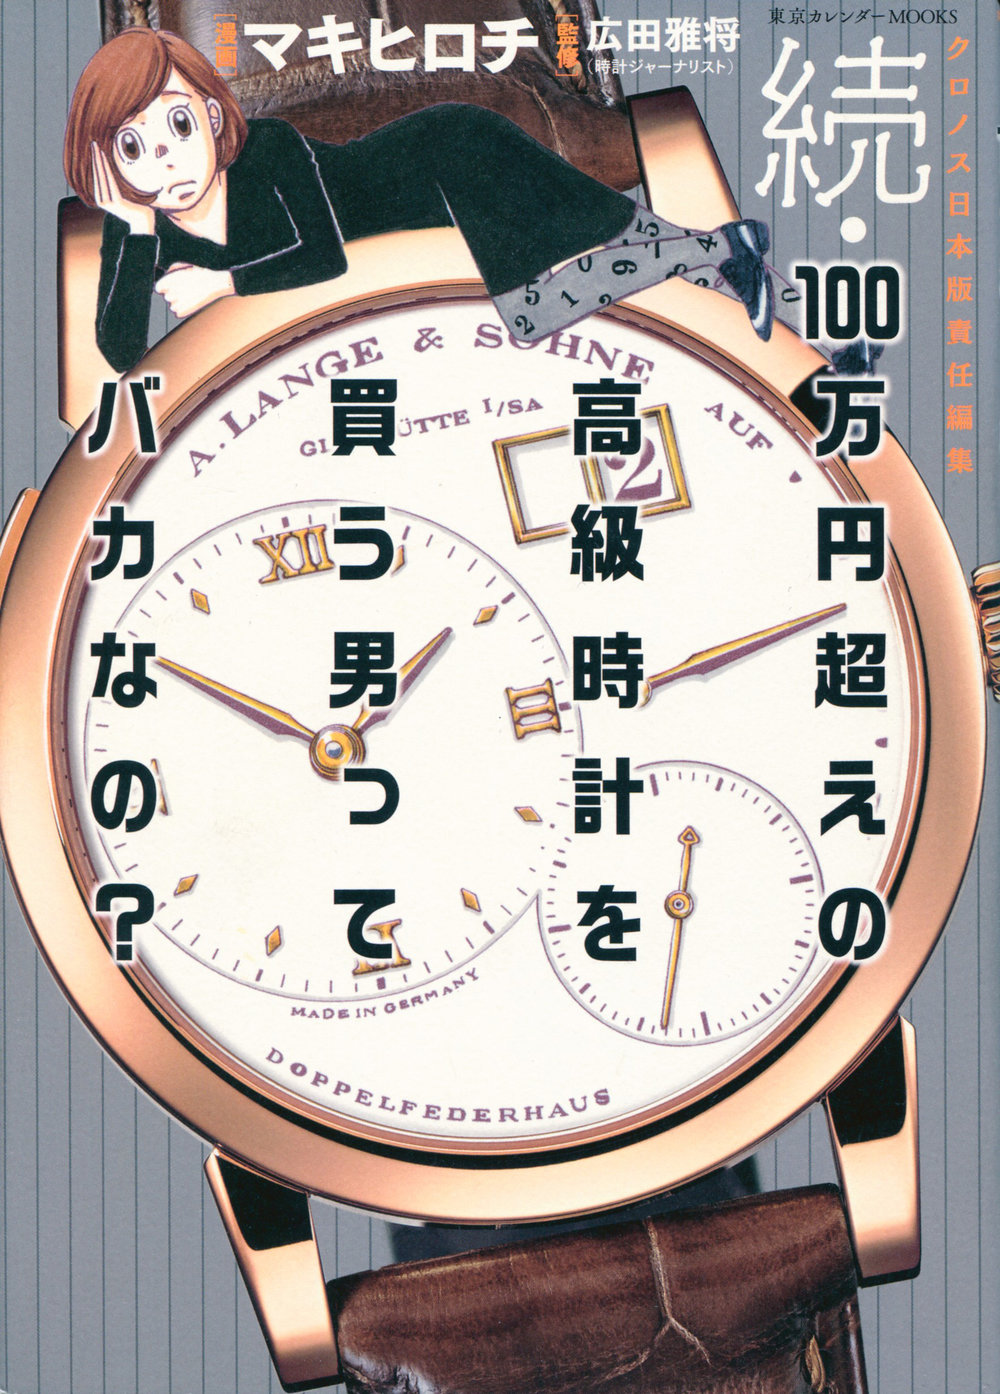 Cover - Is the man who buys a luxury watch priced over 1 million yen a fool?